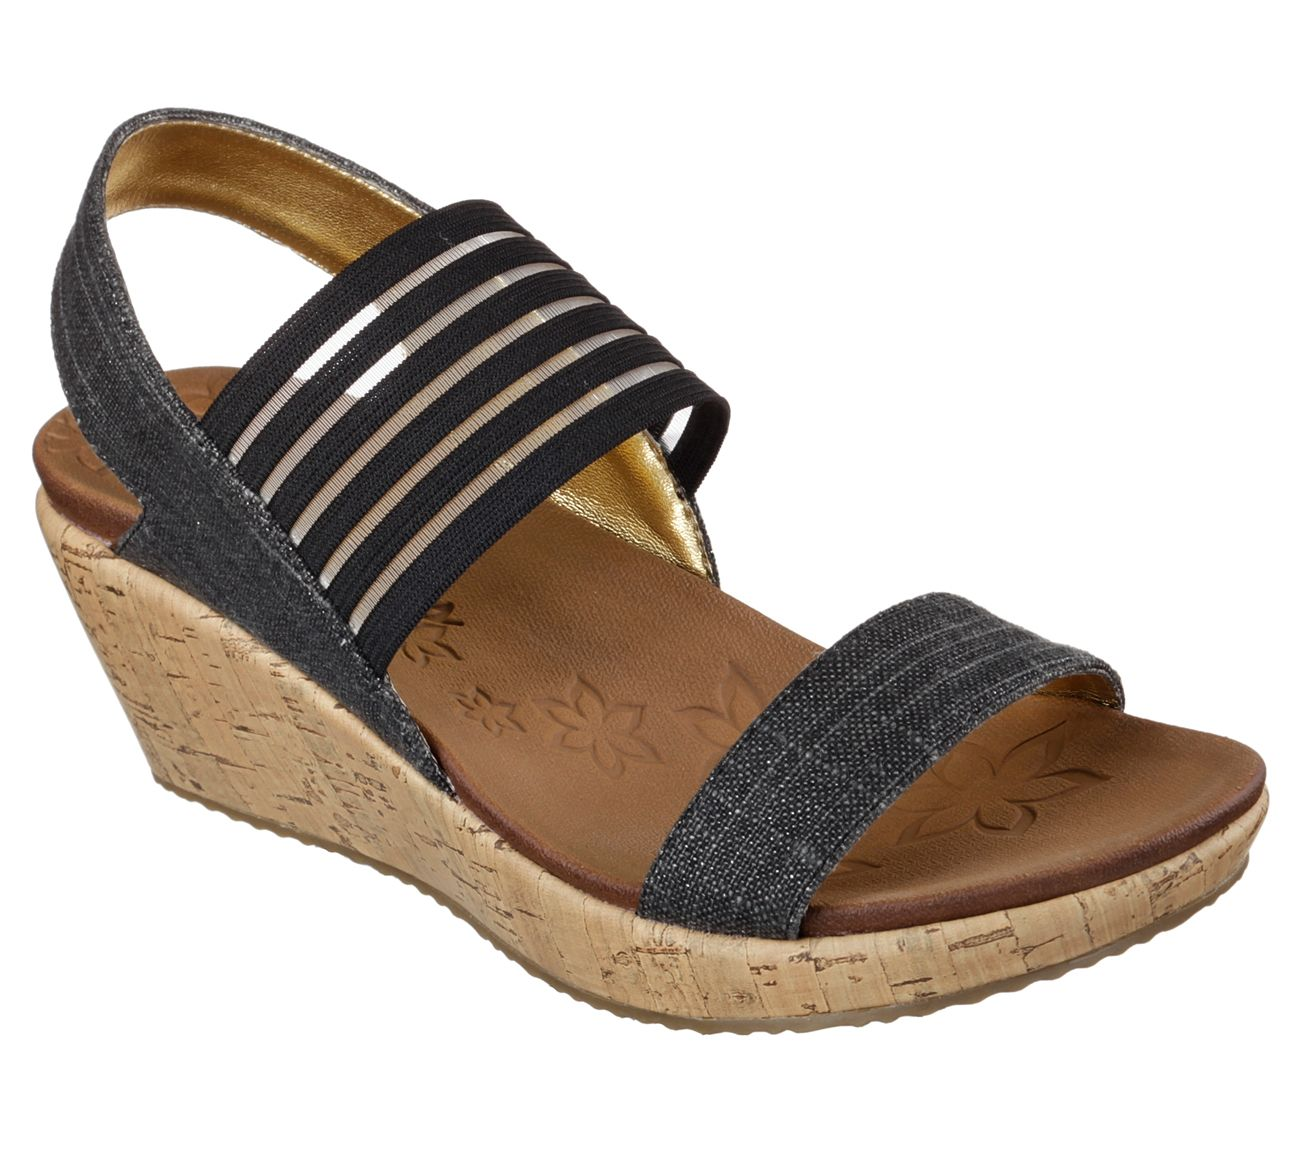 Diversify Your Style With The Skechers Beverlee Smitten Kitten Sandal Soft Sparkle Linen And Stretch Fabr Black Wedge Sandals Skechers Women Skechers Wedges